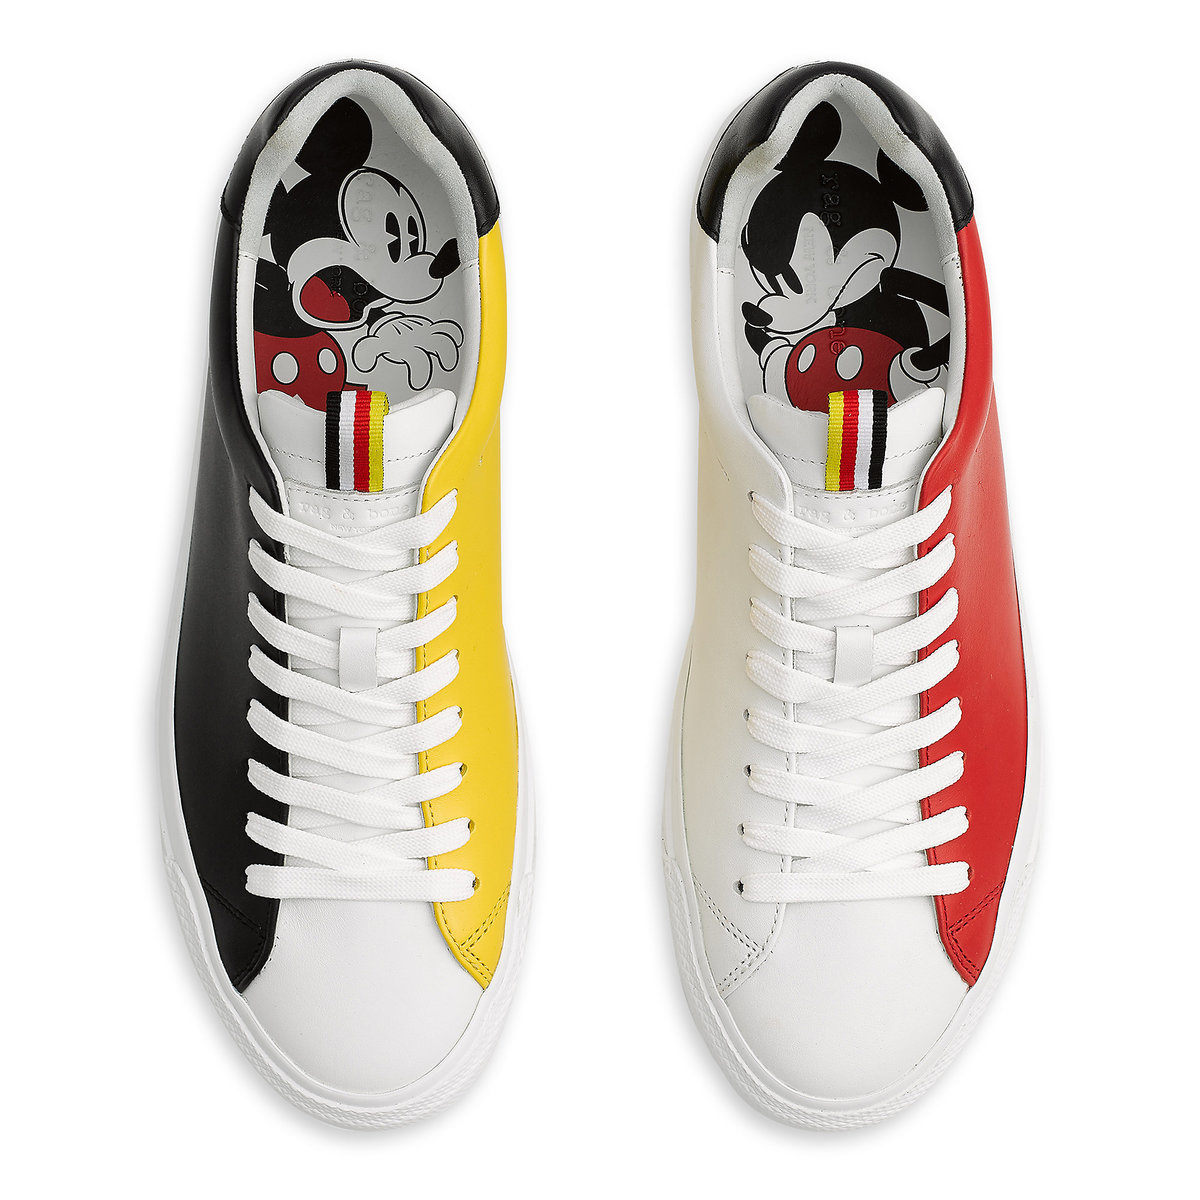 614d7c99d107 Product Image of Mickey Mouse Sneakers for Men by rag   bone   1